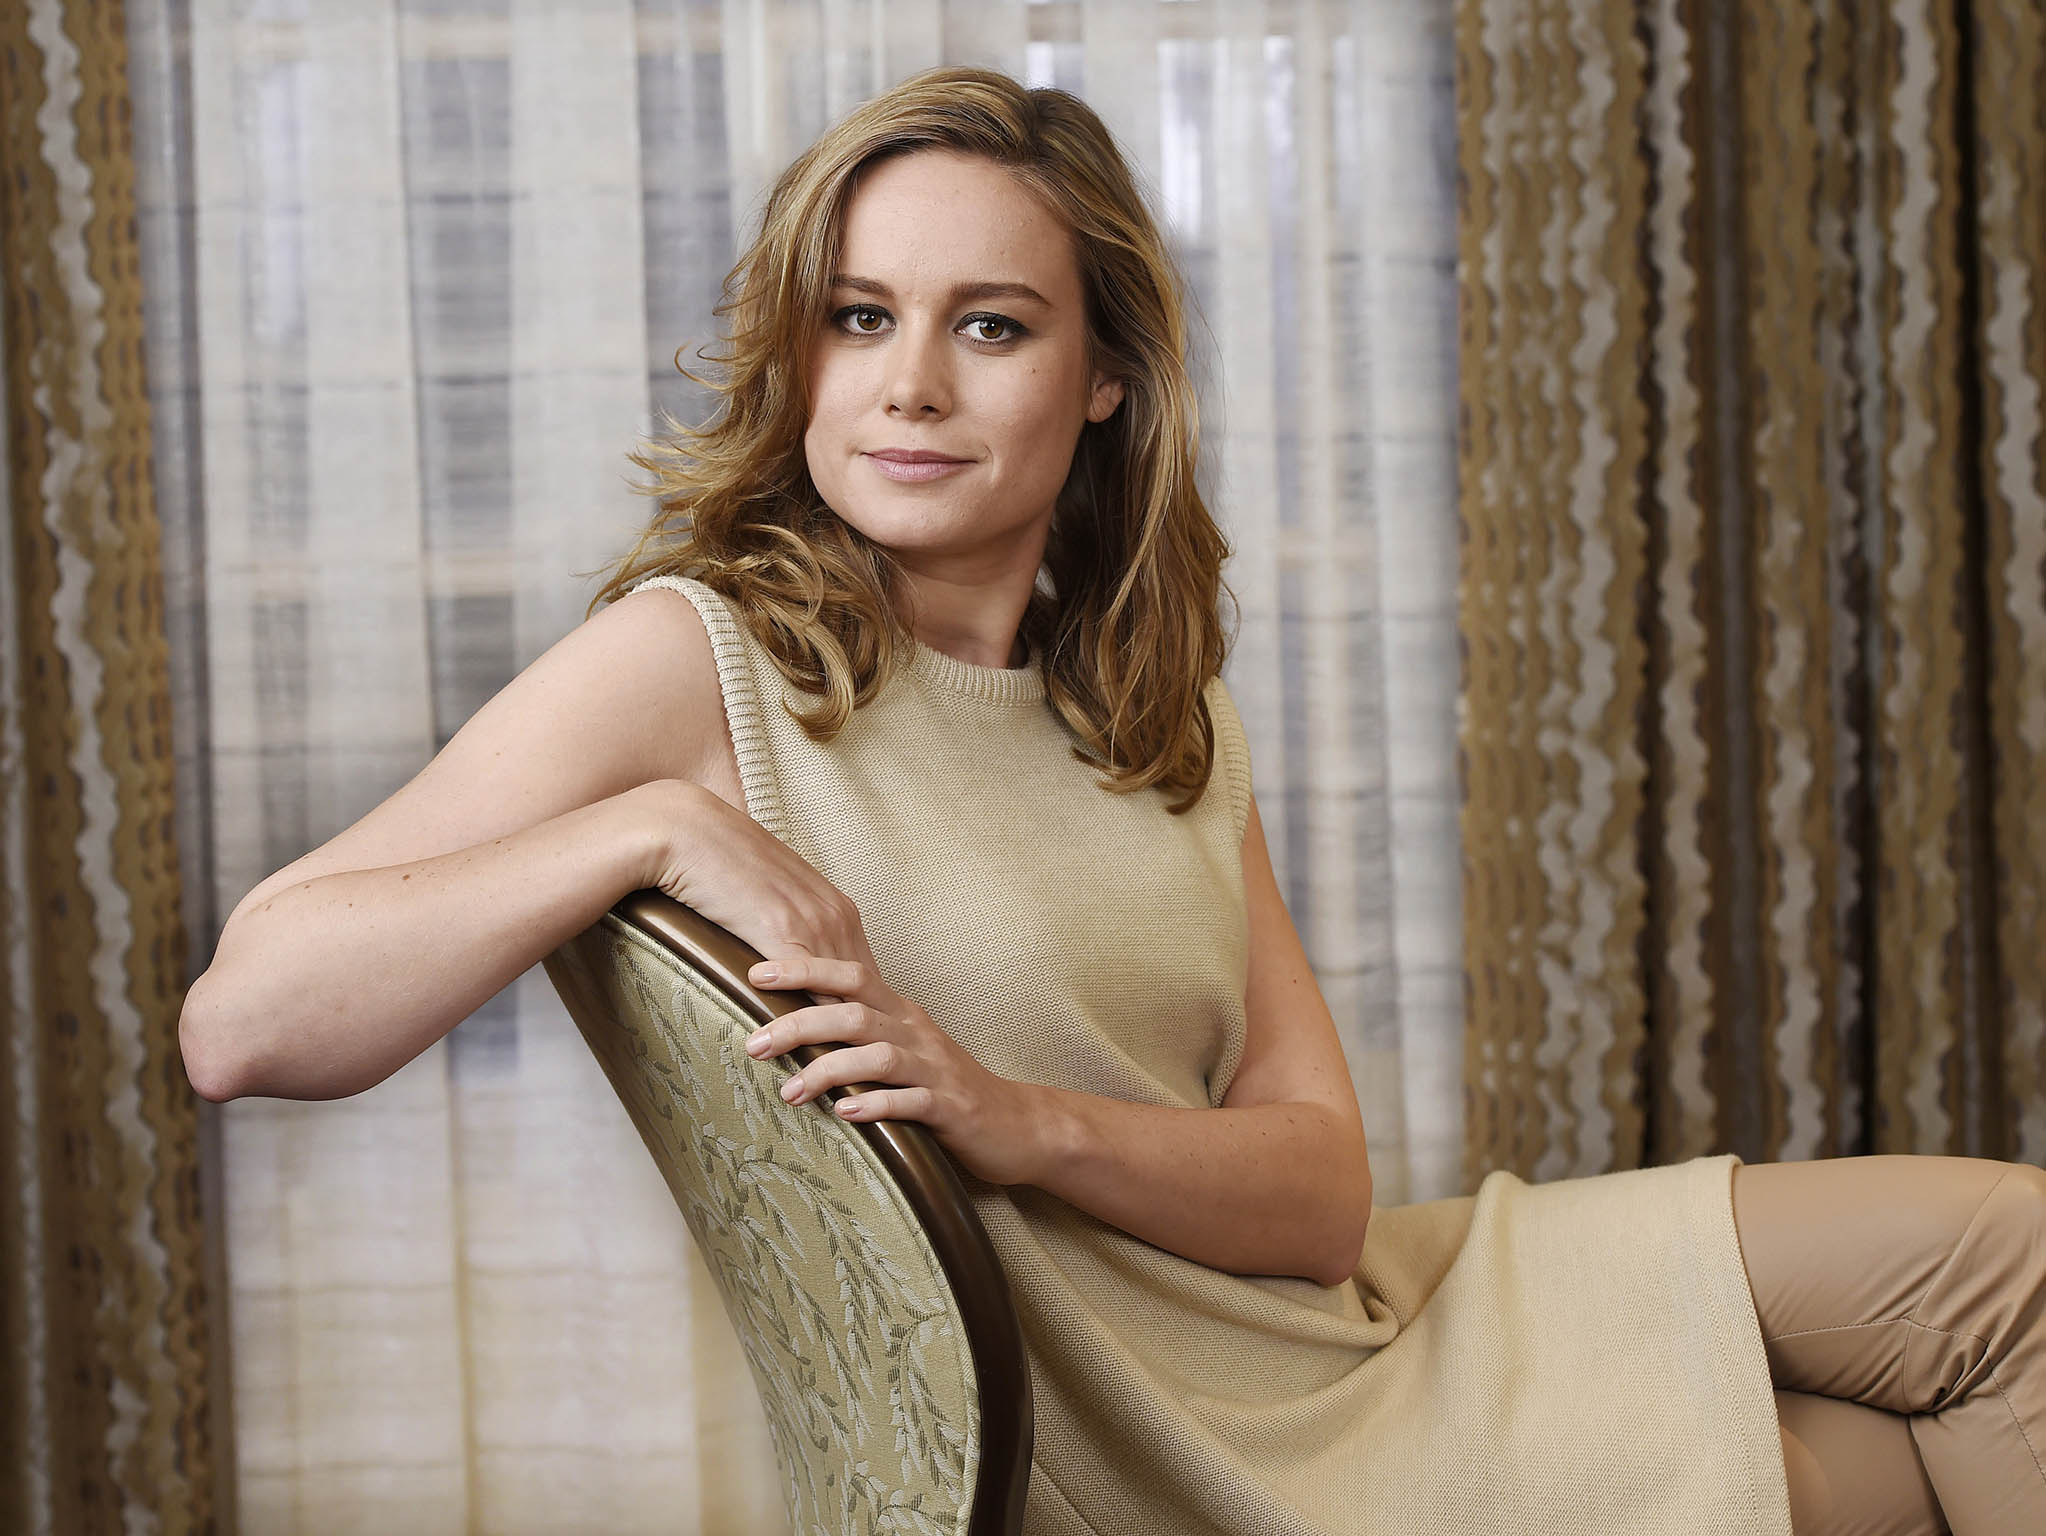 "In this Wed., Sept. 30, 2015 photo, actress Brie Larson poses for a portrait at the Four Seasons Hotel in Los Angeles. Larson stars as Ma in the new film, ""Room."" The movie opens in U.S. theaters on Oct. 16, 2015. (Photo by Chris Pizzello/Invision/AP)"